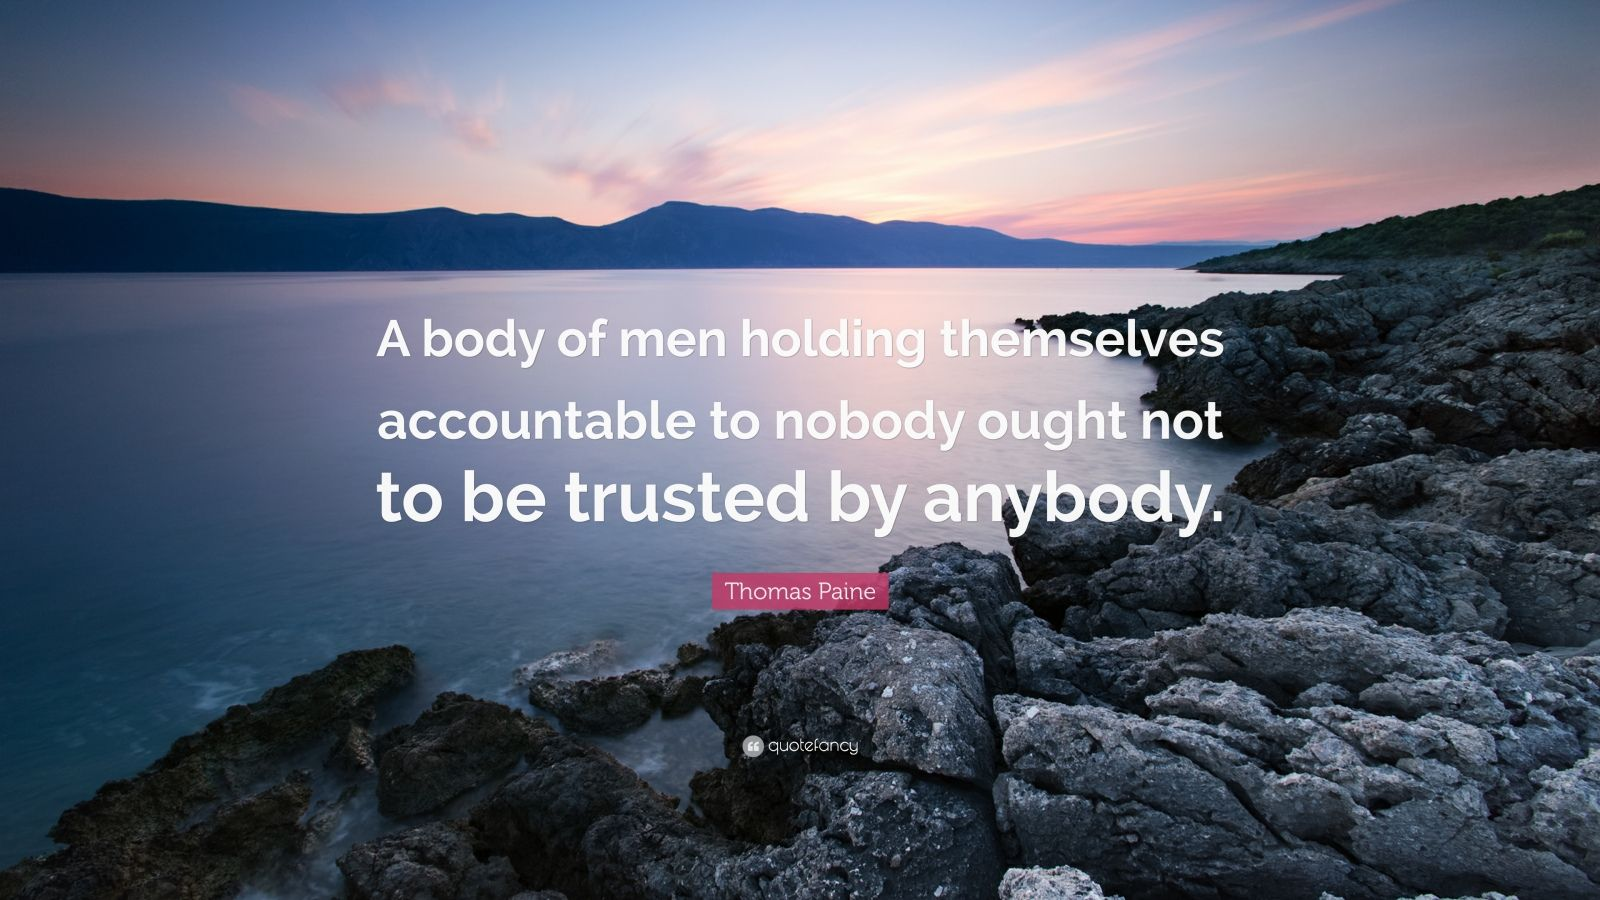 """Thomas Paine Quote: """"A body of men holding themselves accountable to nobody ought not to be trusted by anybody."""""""